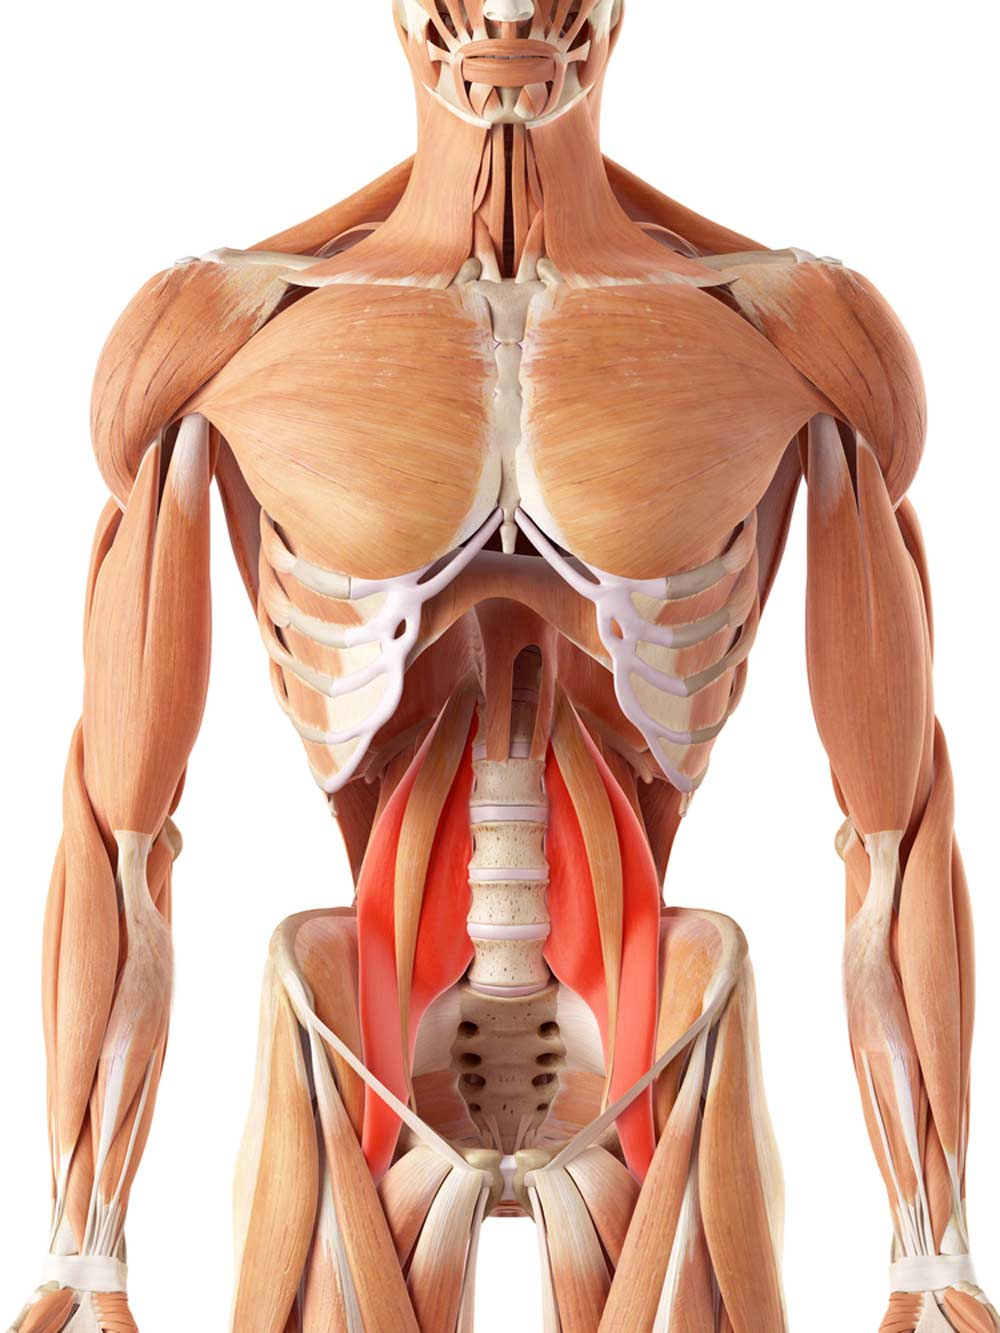 (Credit: Cathe.com - The Psoas Muscle)